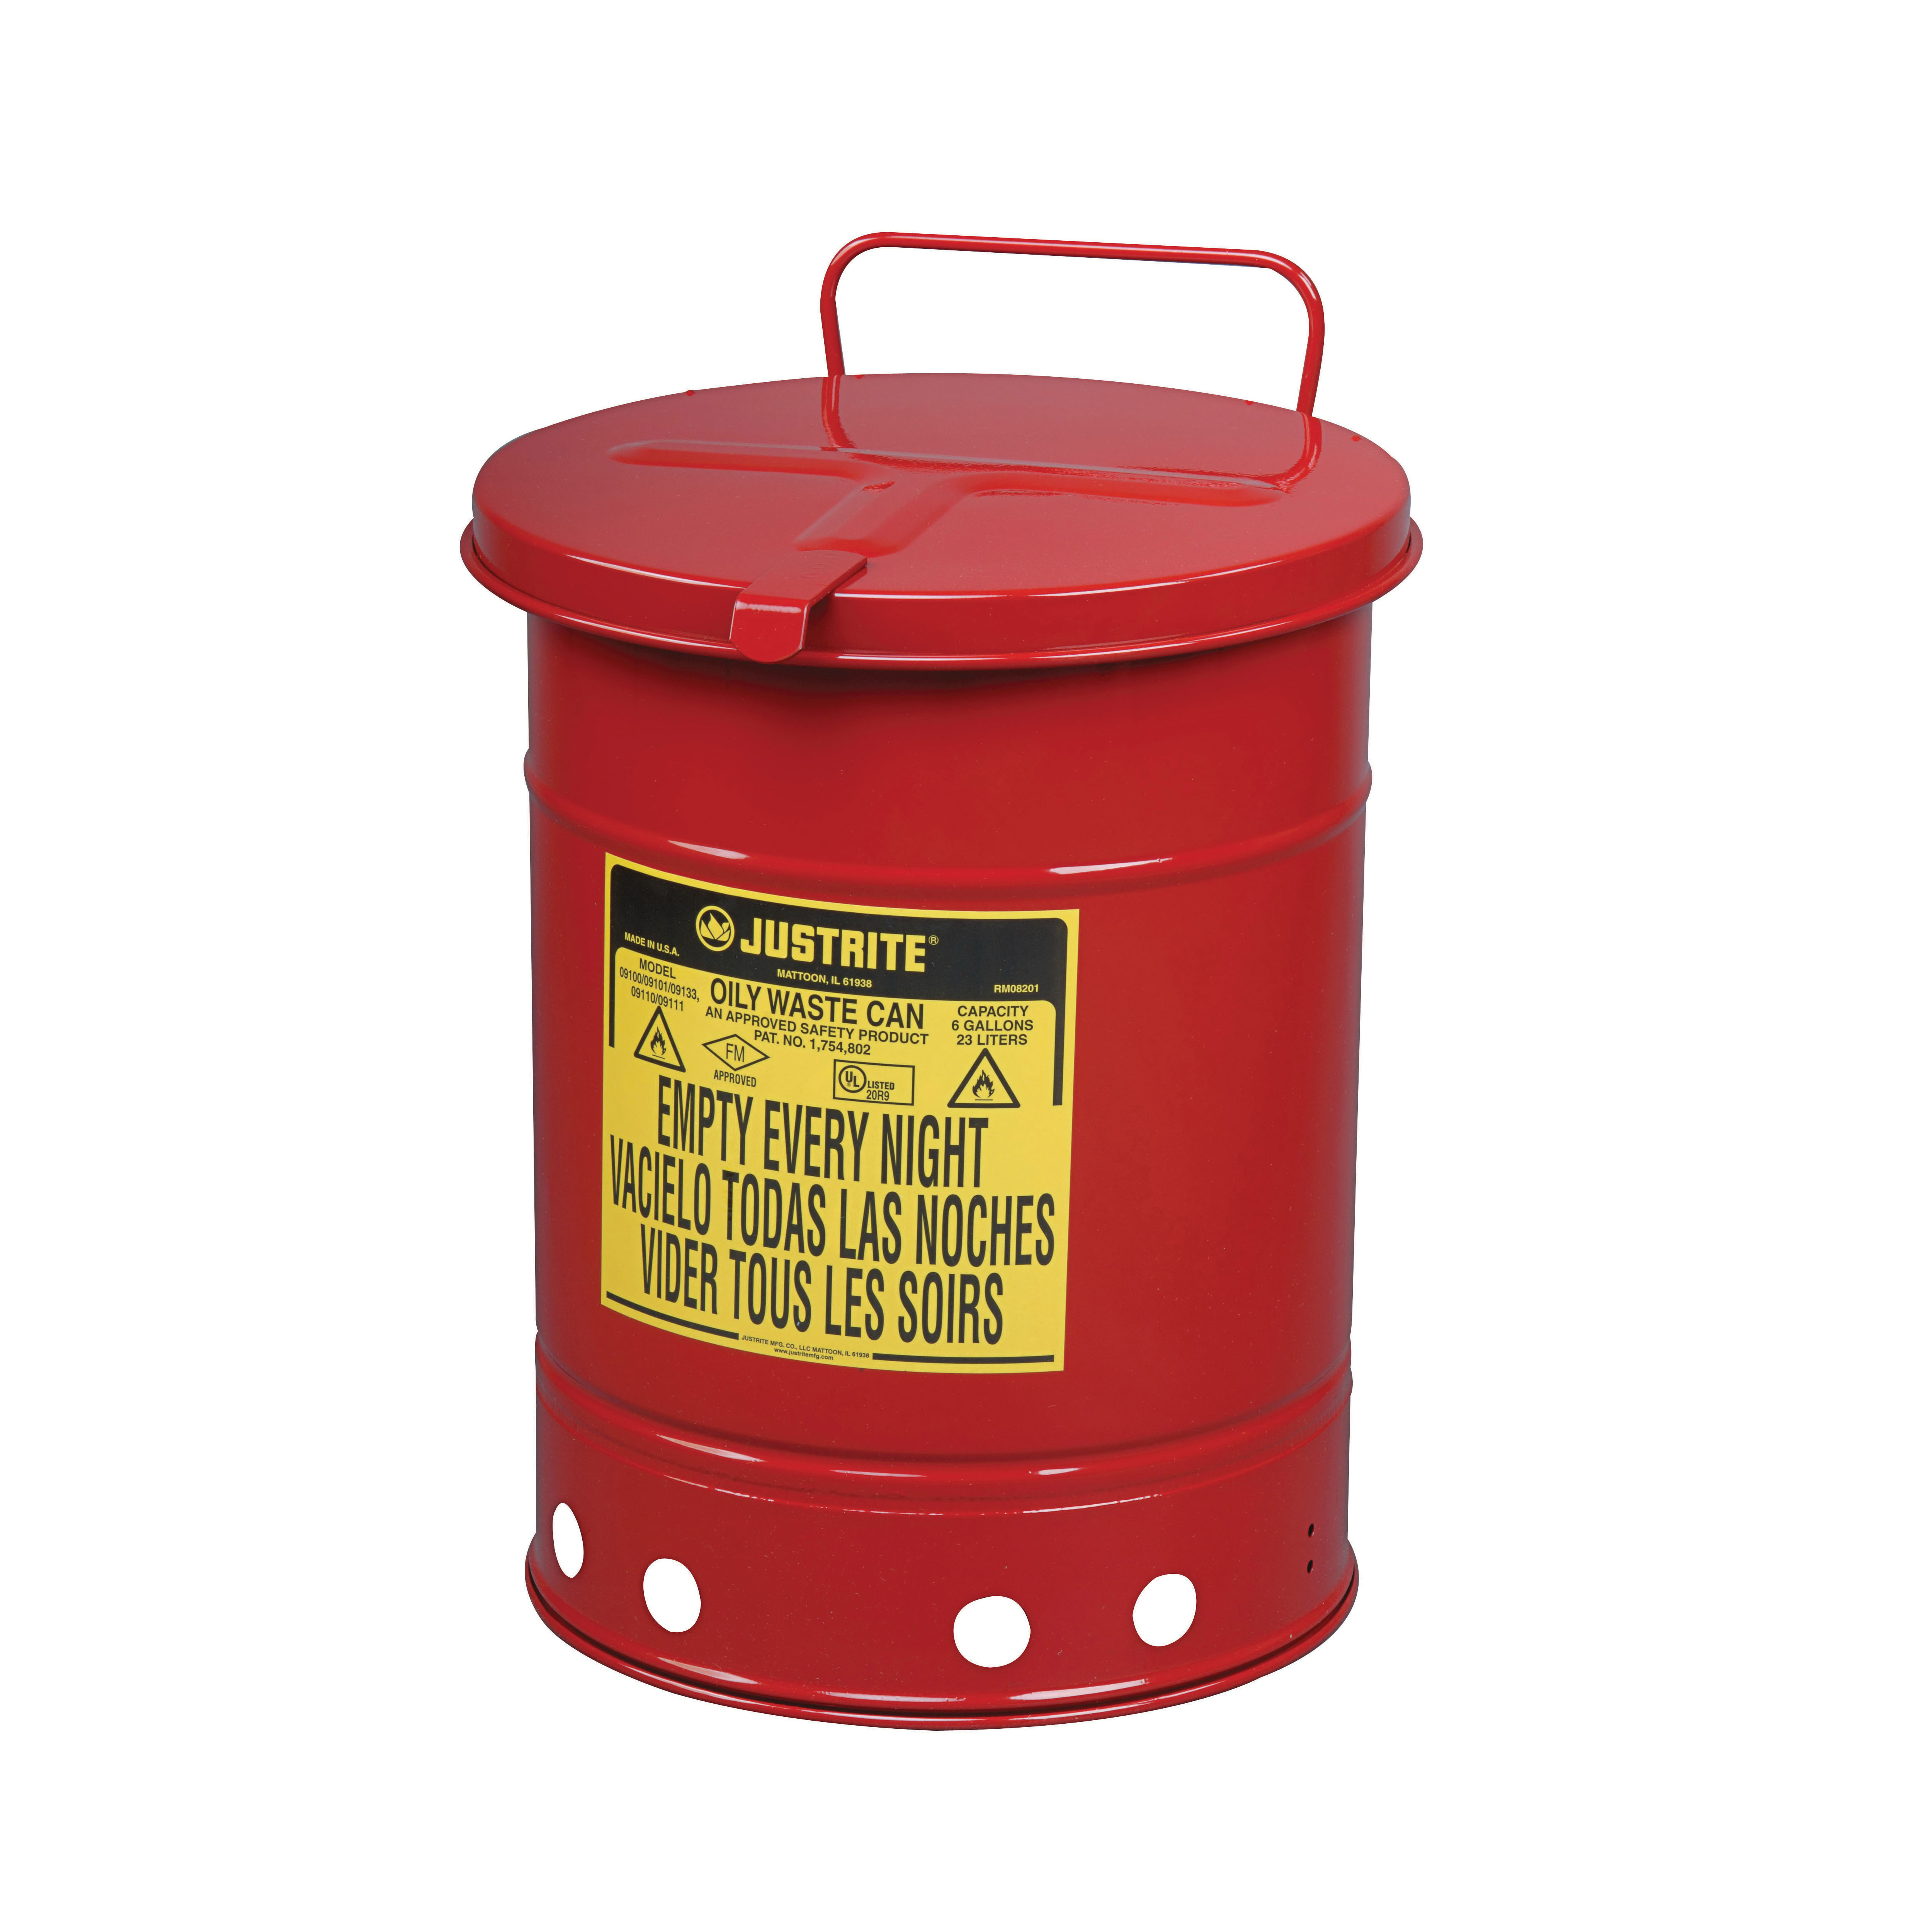 Justrite® 09310 Hand Operated Oily Waste Can, 10 gal Capacity, 13.938 in Dia x 18-1/4 in H, Steel, Red